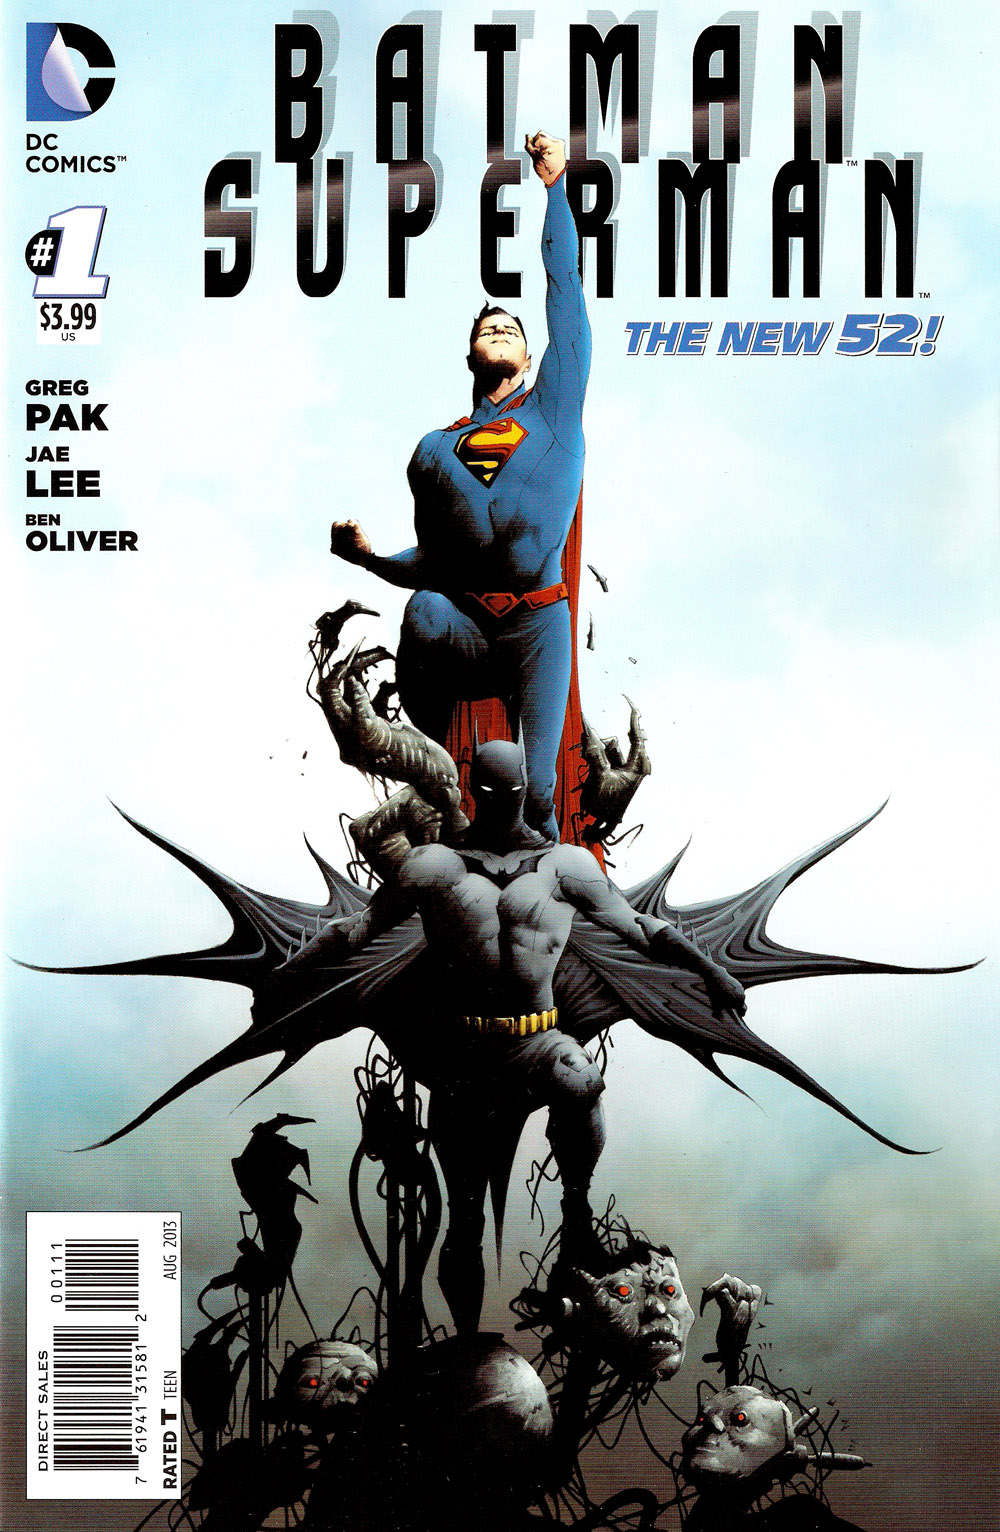 Batman Superman (2013) #001